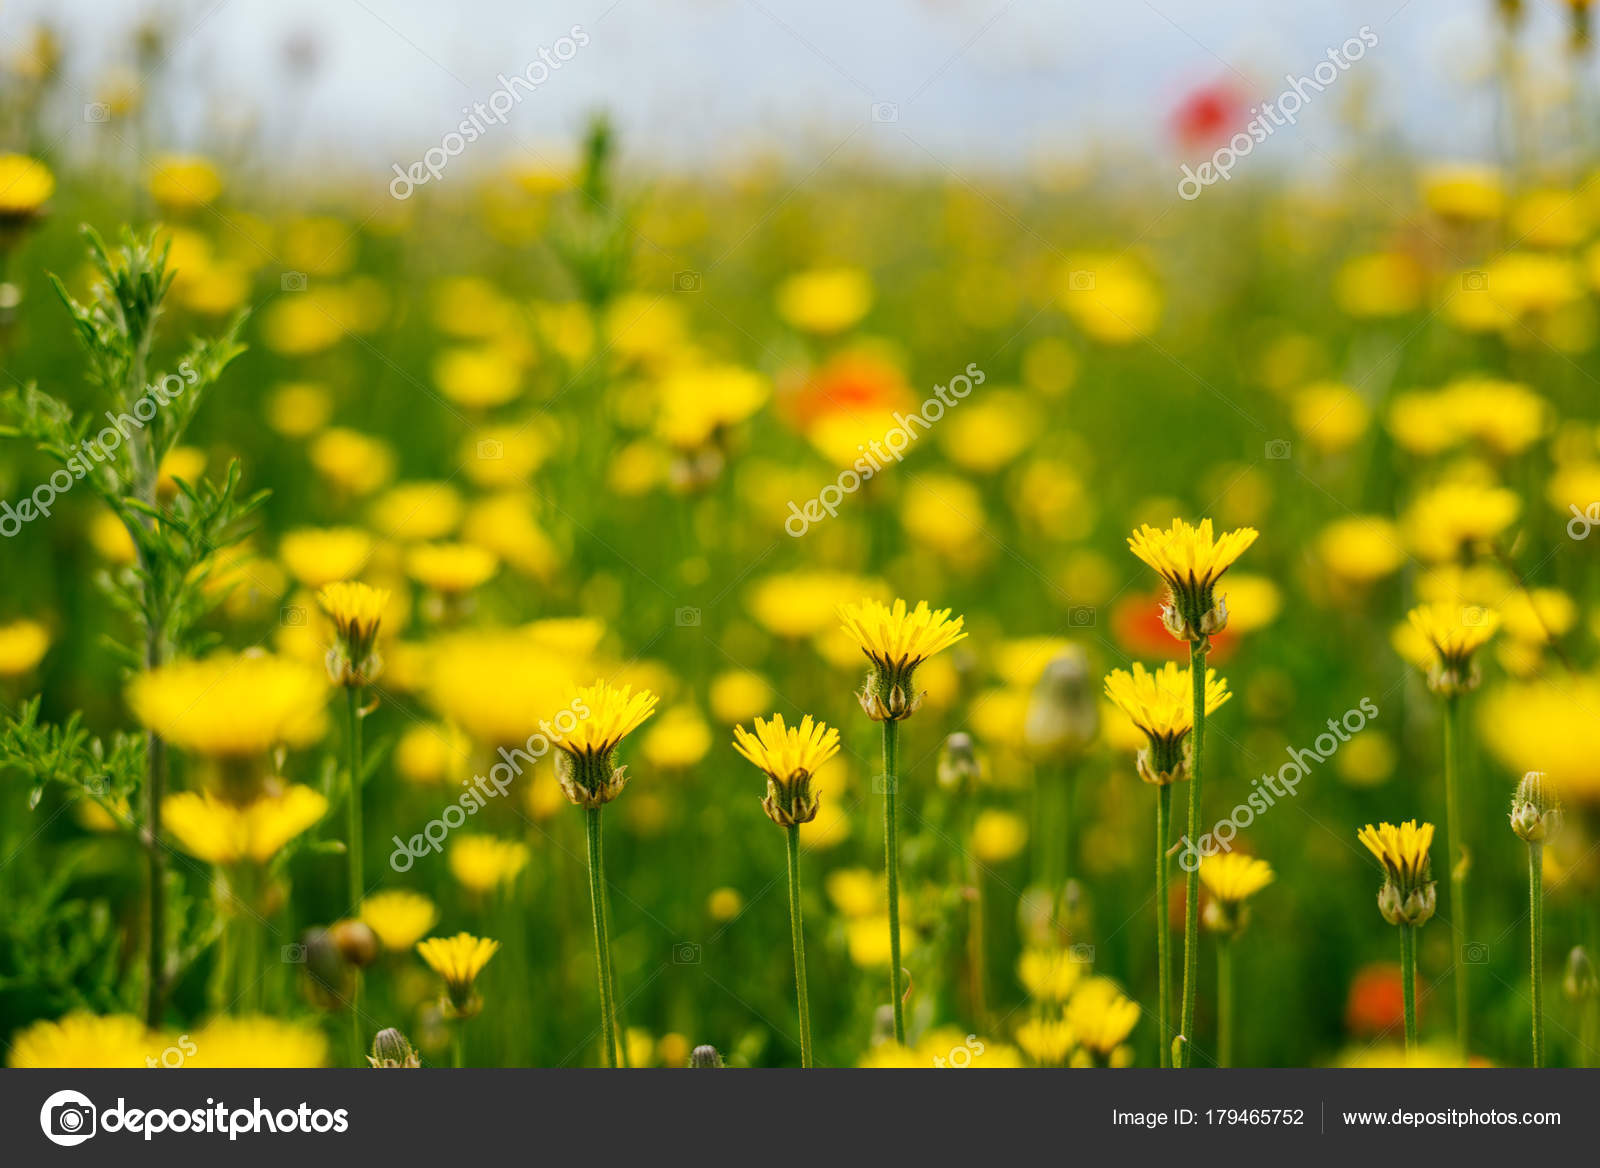 On The Green Endless Field Grow Yellow Fragrant Spring Flowers